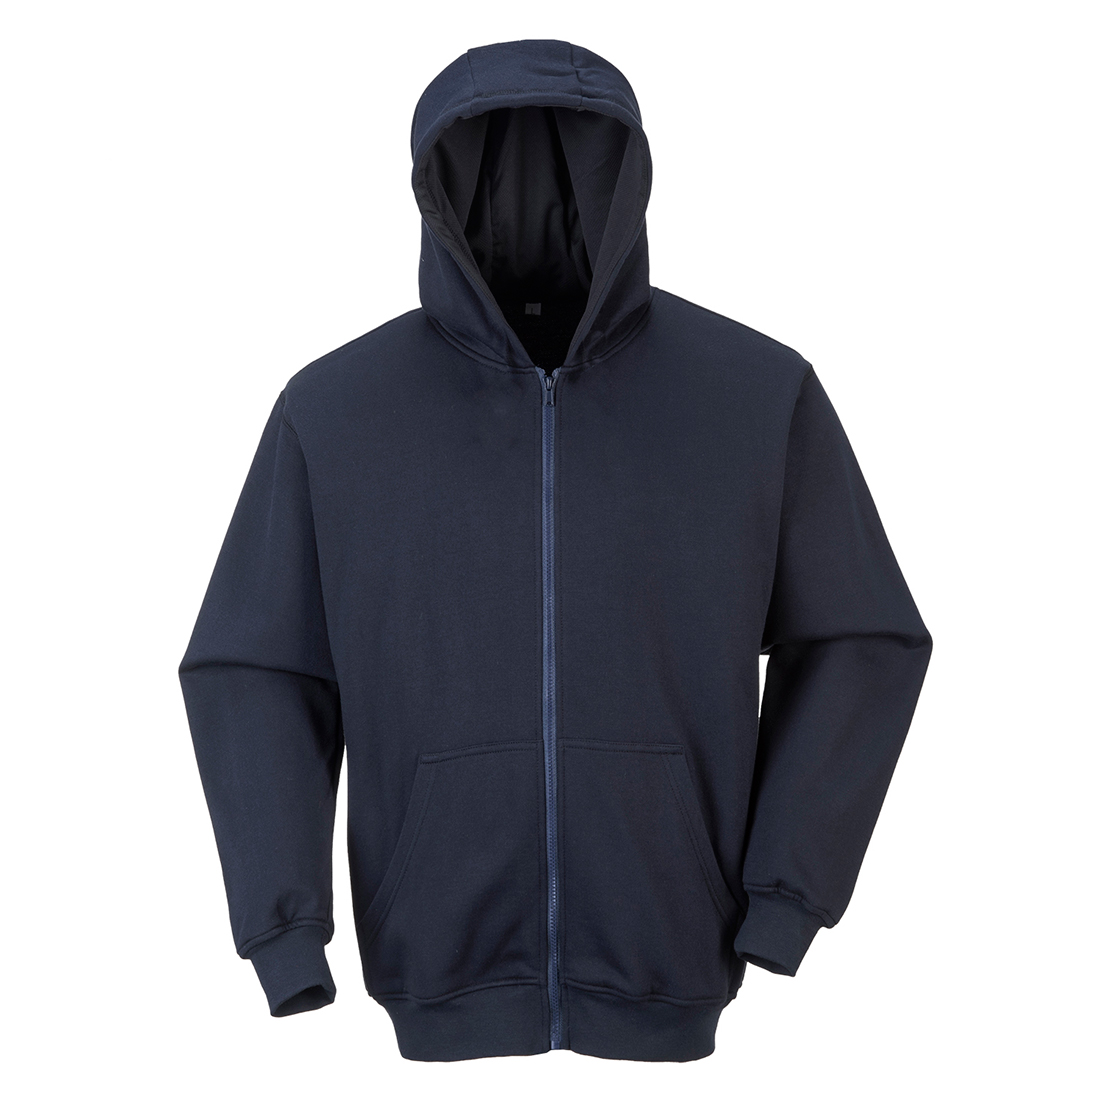 Portwest FR Zip Front Hooded Sweatshirt - FR81